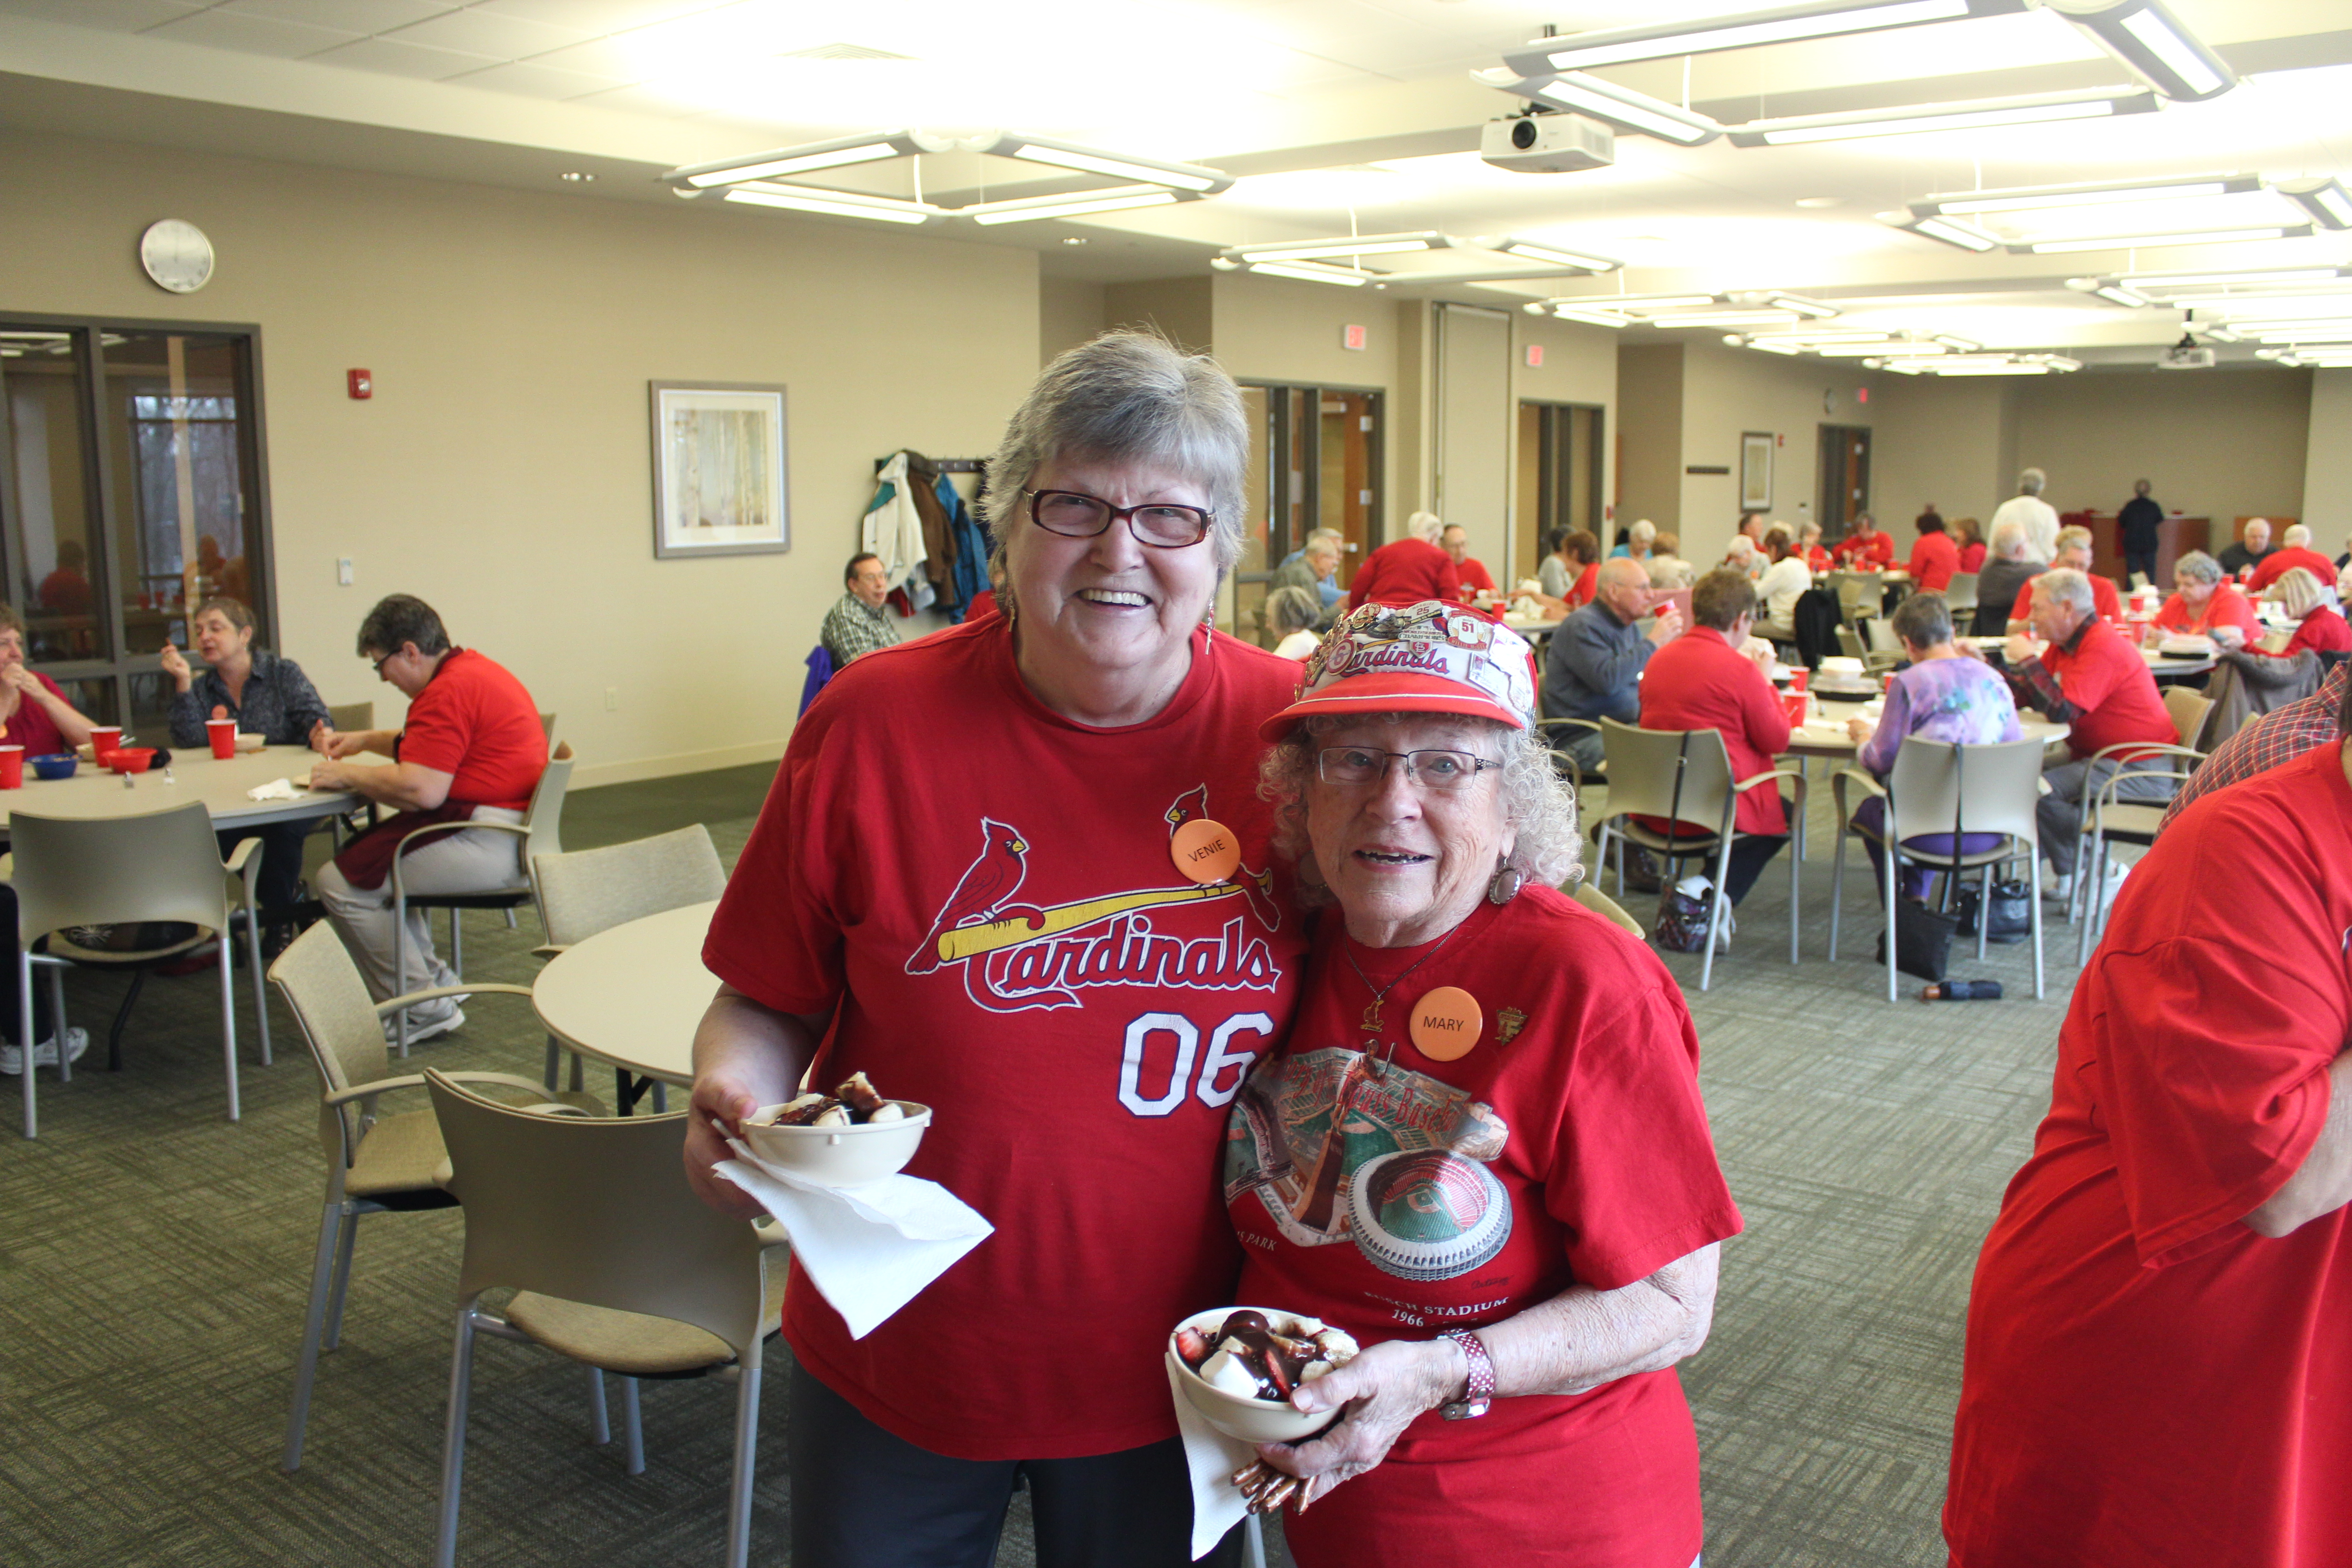 Two Seniors Wearing Cardinals T-Shirts